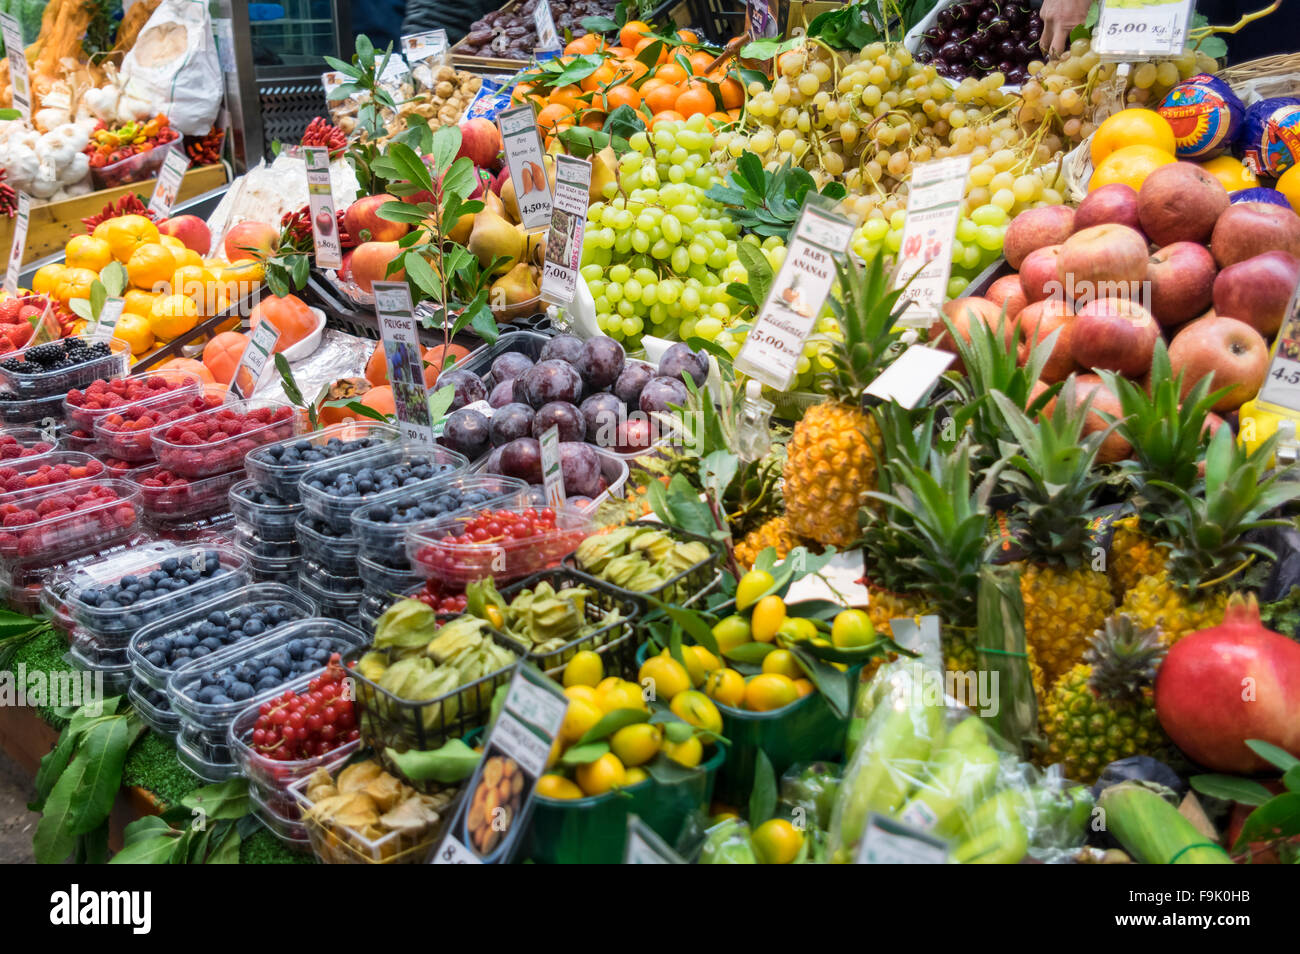 Various colorful fruits on sale at Mercato Orientale, one of the largest permanent food markets in Genova, Liguria, - Stock Image